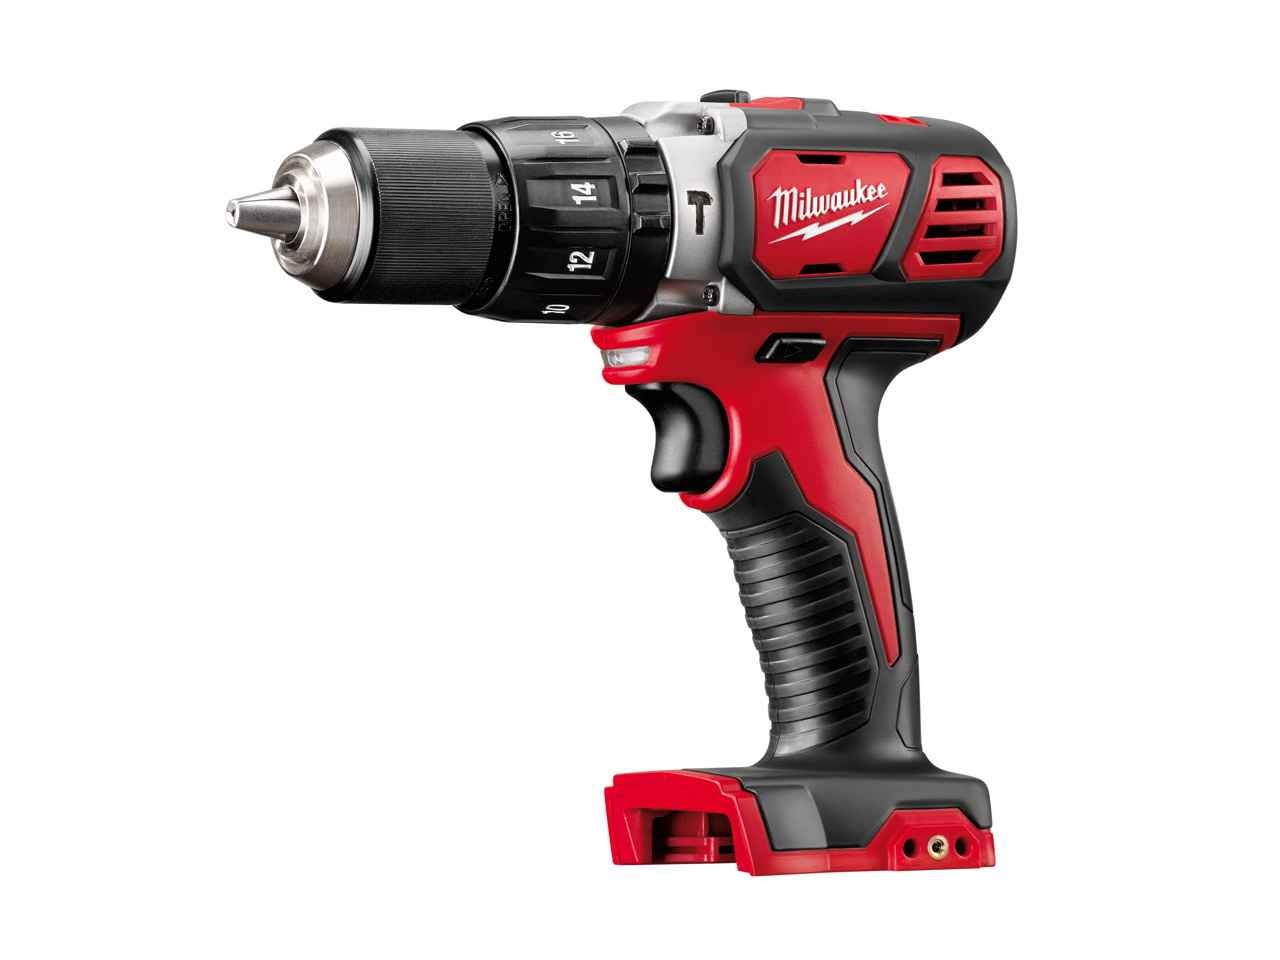 MILWAUKEE 18V BRUSHED COMBI DRILL - M18BPD - BODY ONLY